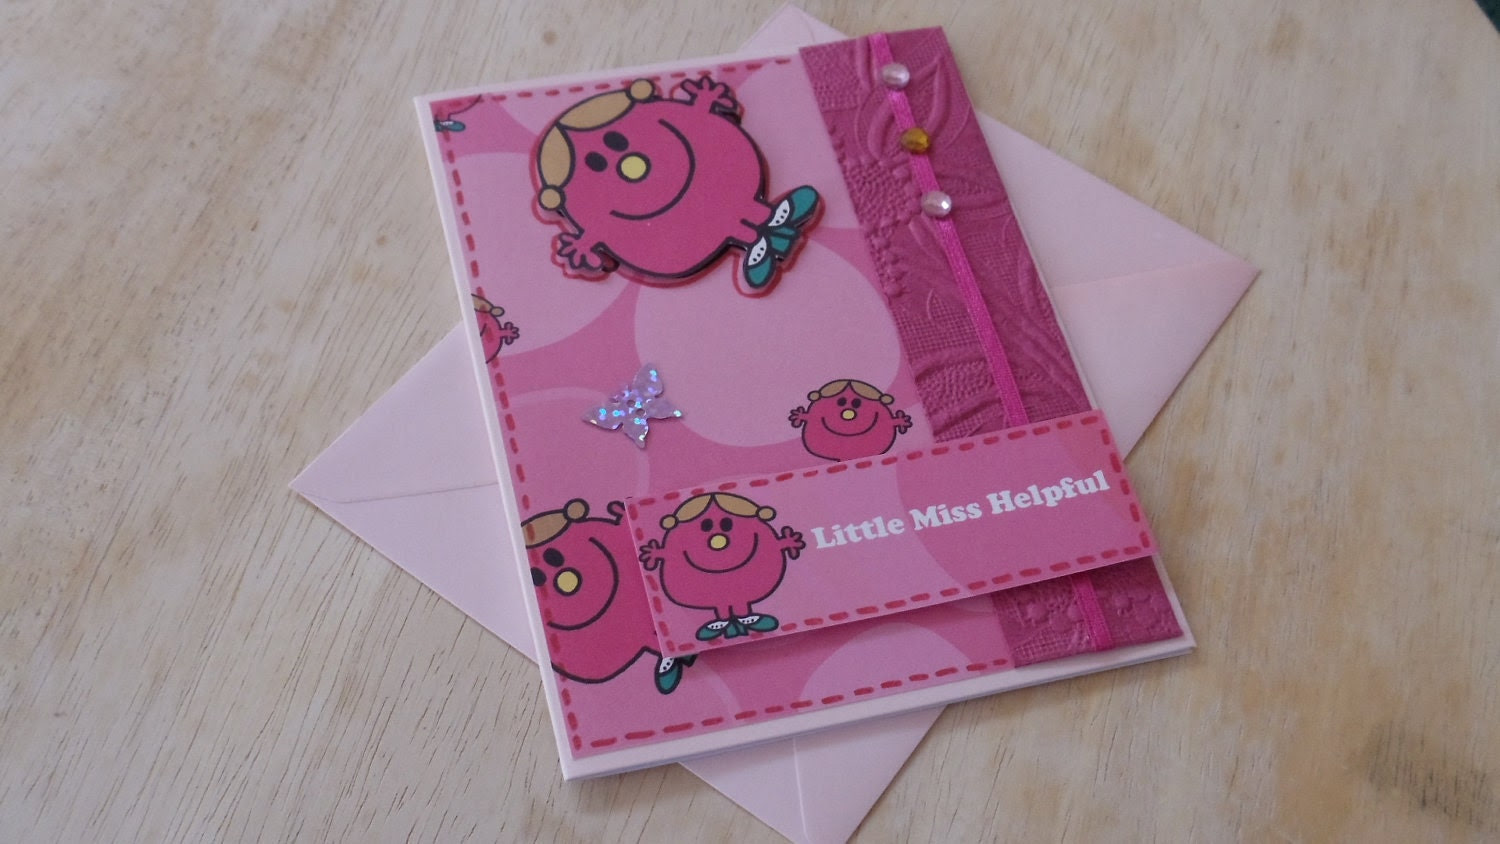 Special Offer - Reduced Little 'Miss Helpful' Thank You Card